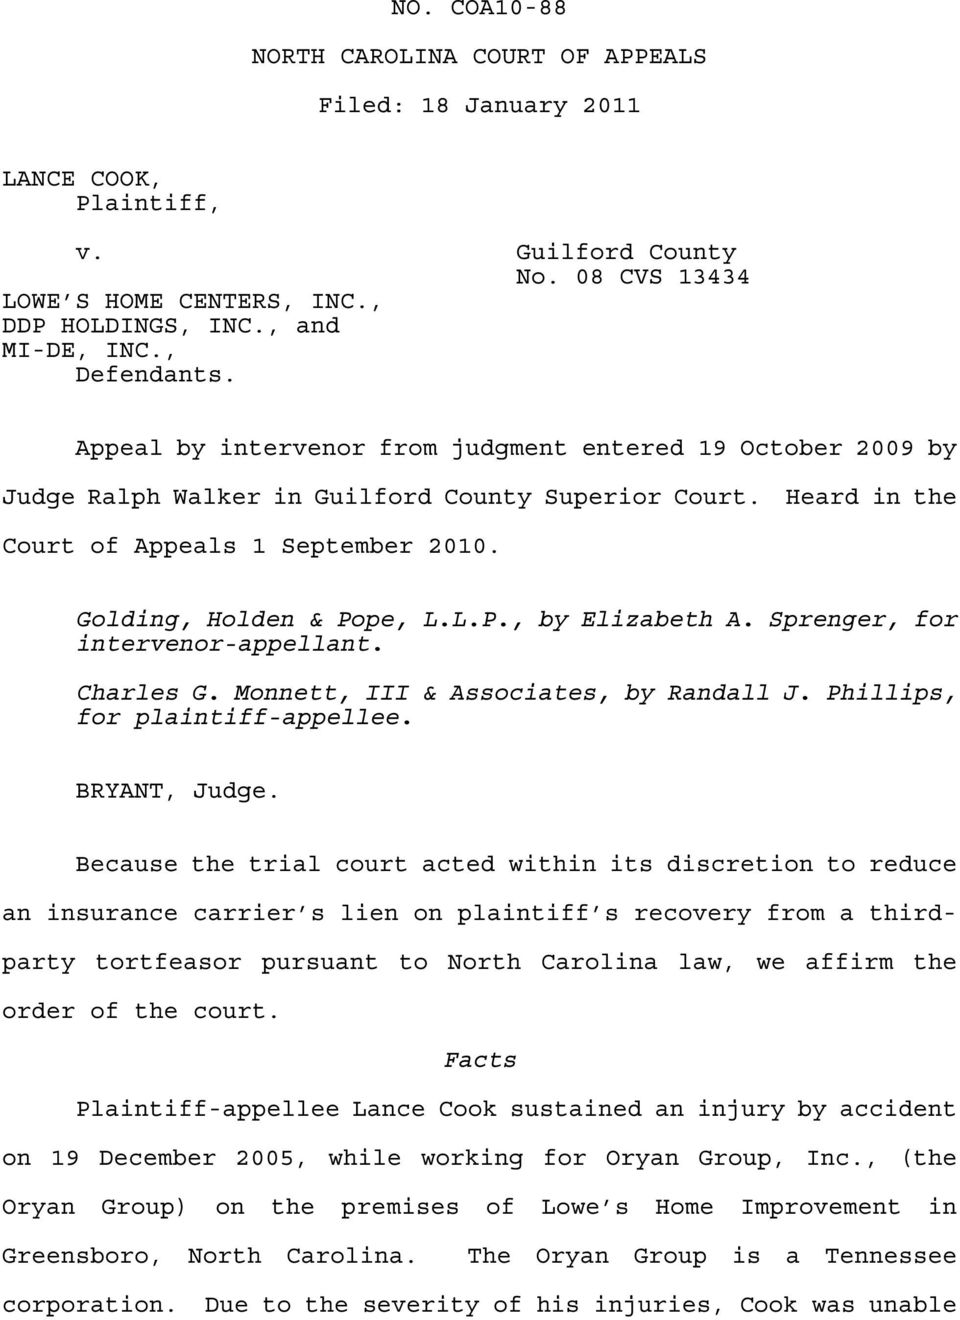 Golding, Holden & Pope, L.L.P., by Elizabeth A. Sprenger, for intervenor-appellant. Charles G. Monnett, III & Associates, by Randall J. Phillips, for plaintiff-appellee. BRYANT, Judge.